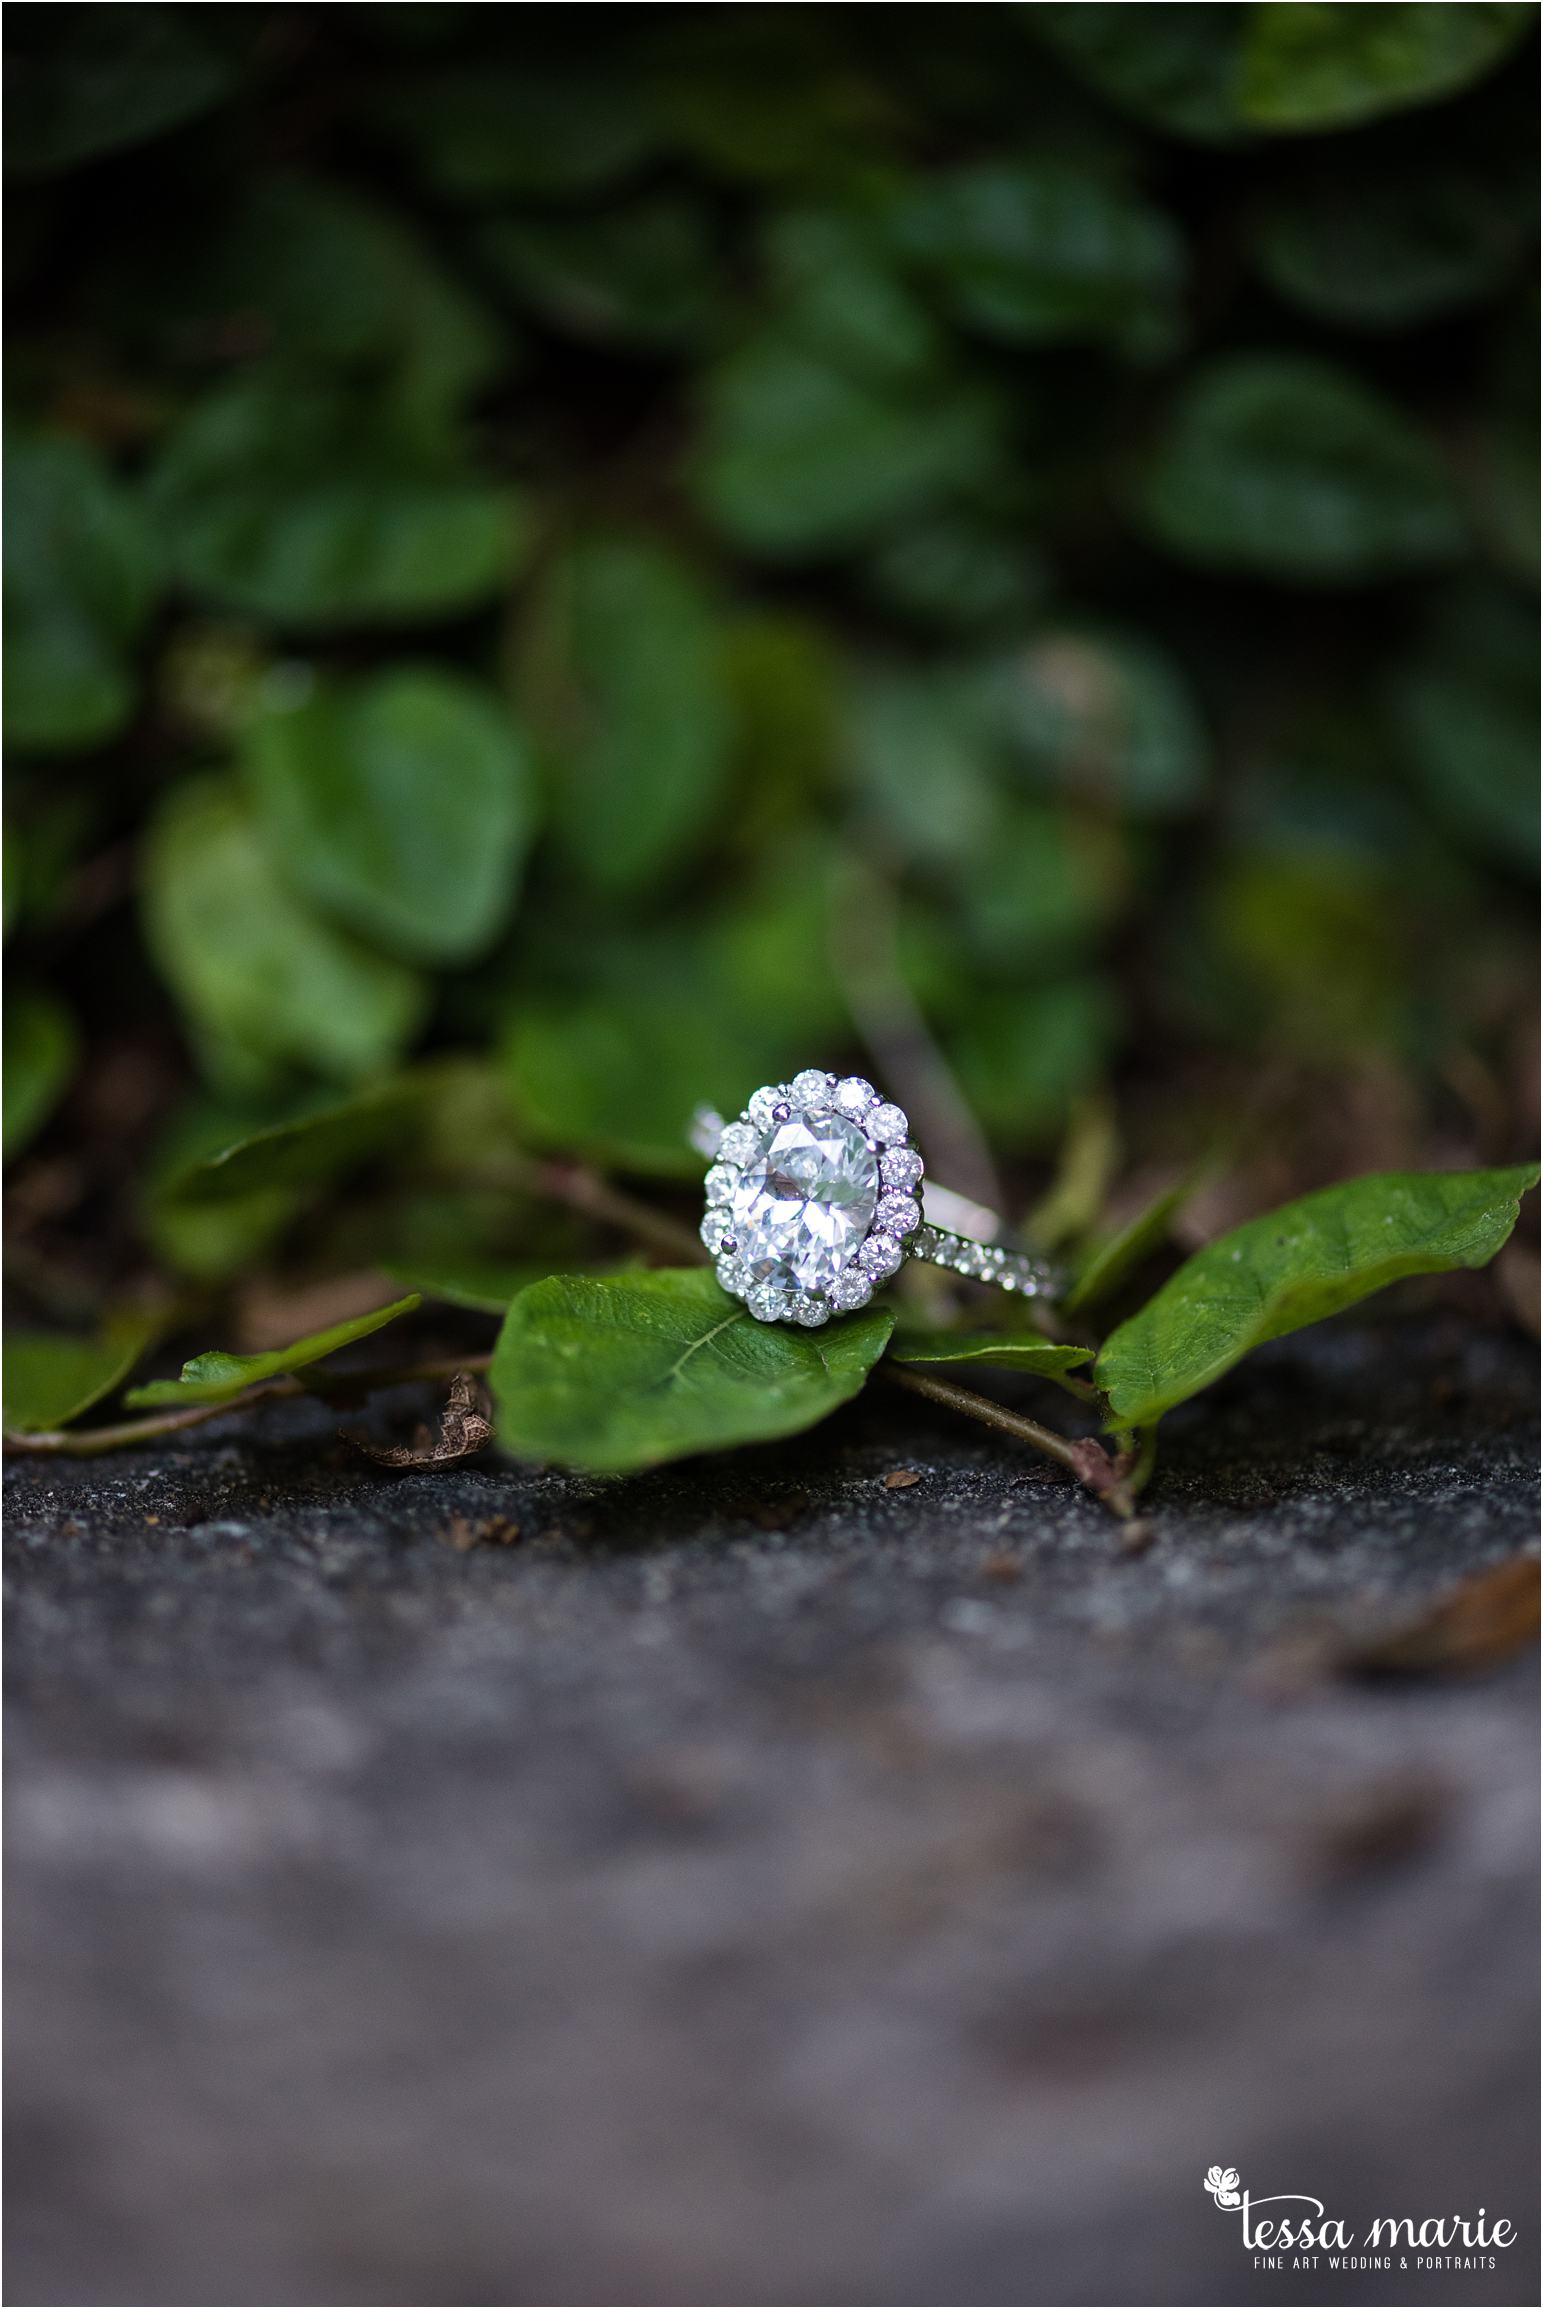 athens_ga_uga_university_of_georgia_engagement_pictures_north_campus_tessa_marie_weddings_athens_wedding_photographer_0105